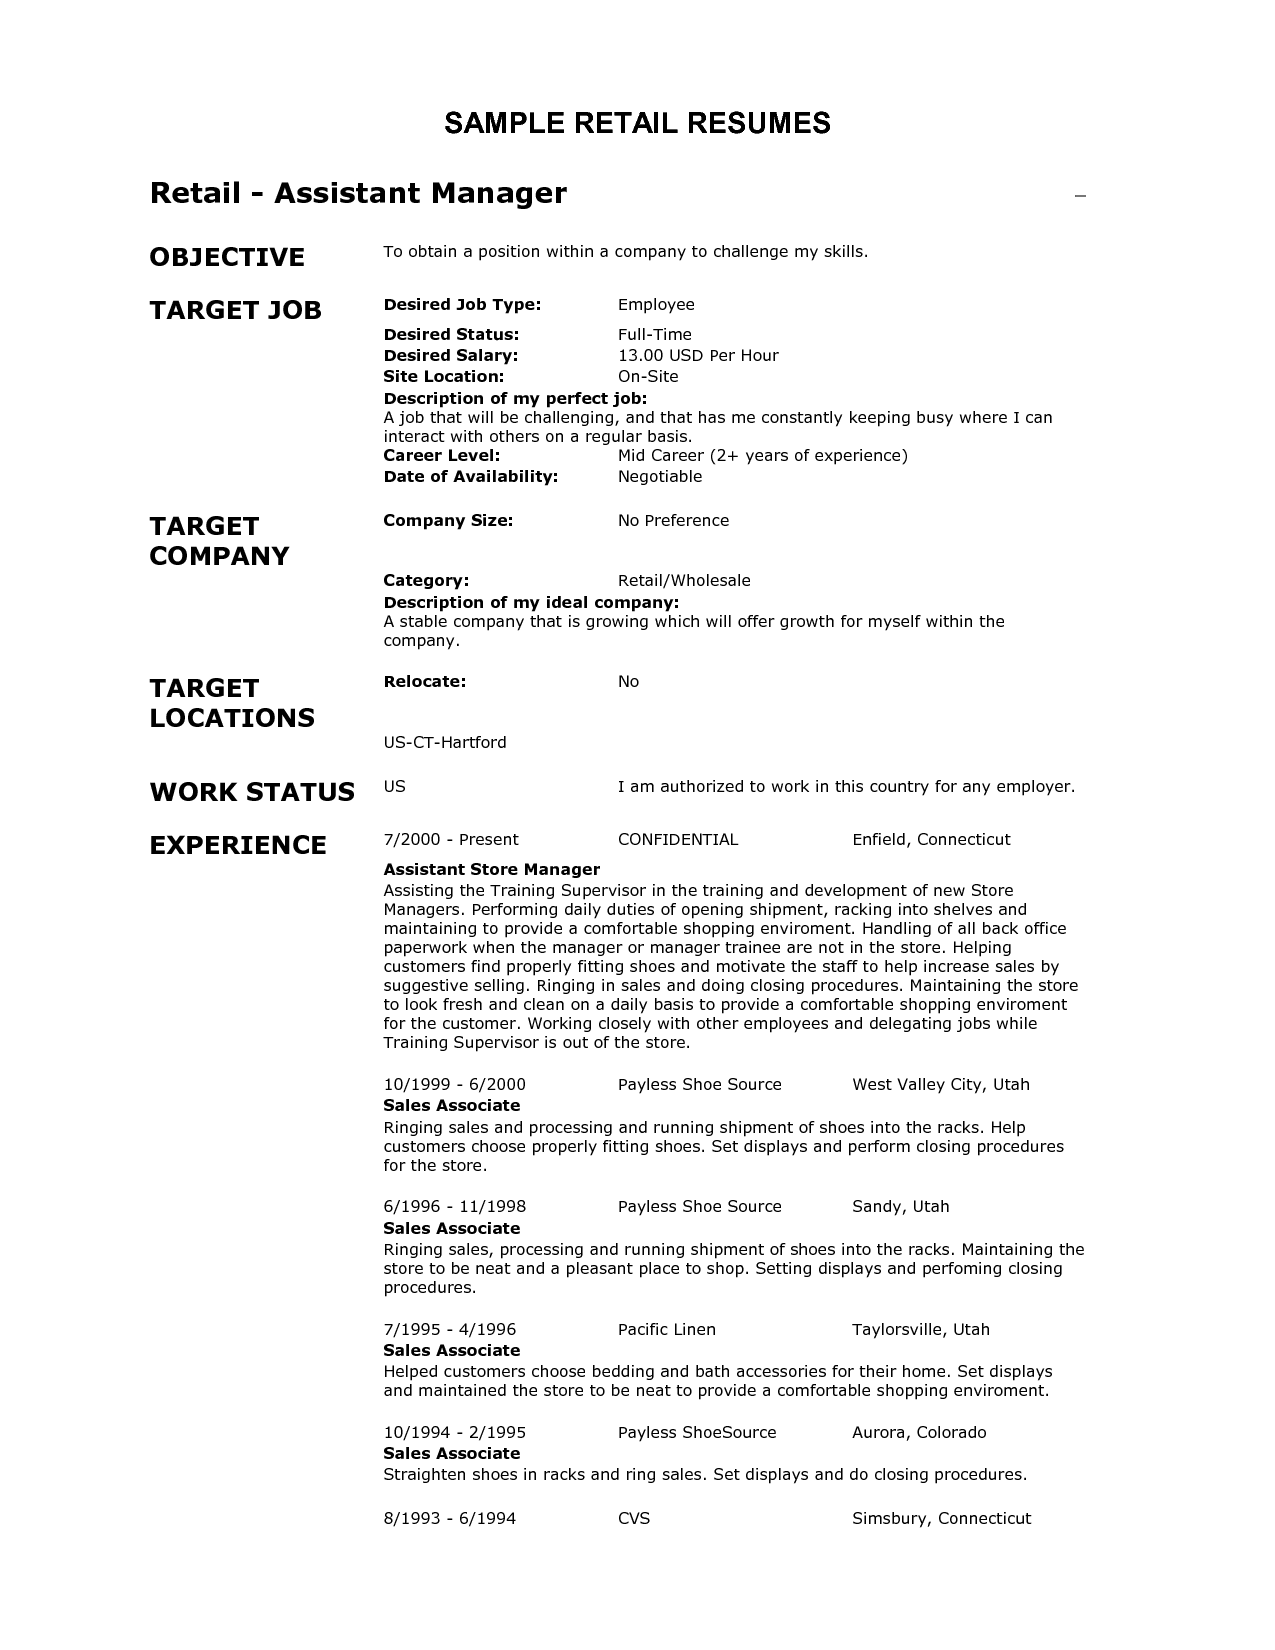 sample resume for assistant manager in retail - 10 best resume objective samples samplebusinessresume